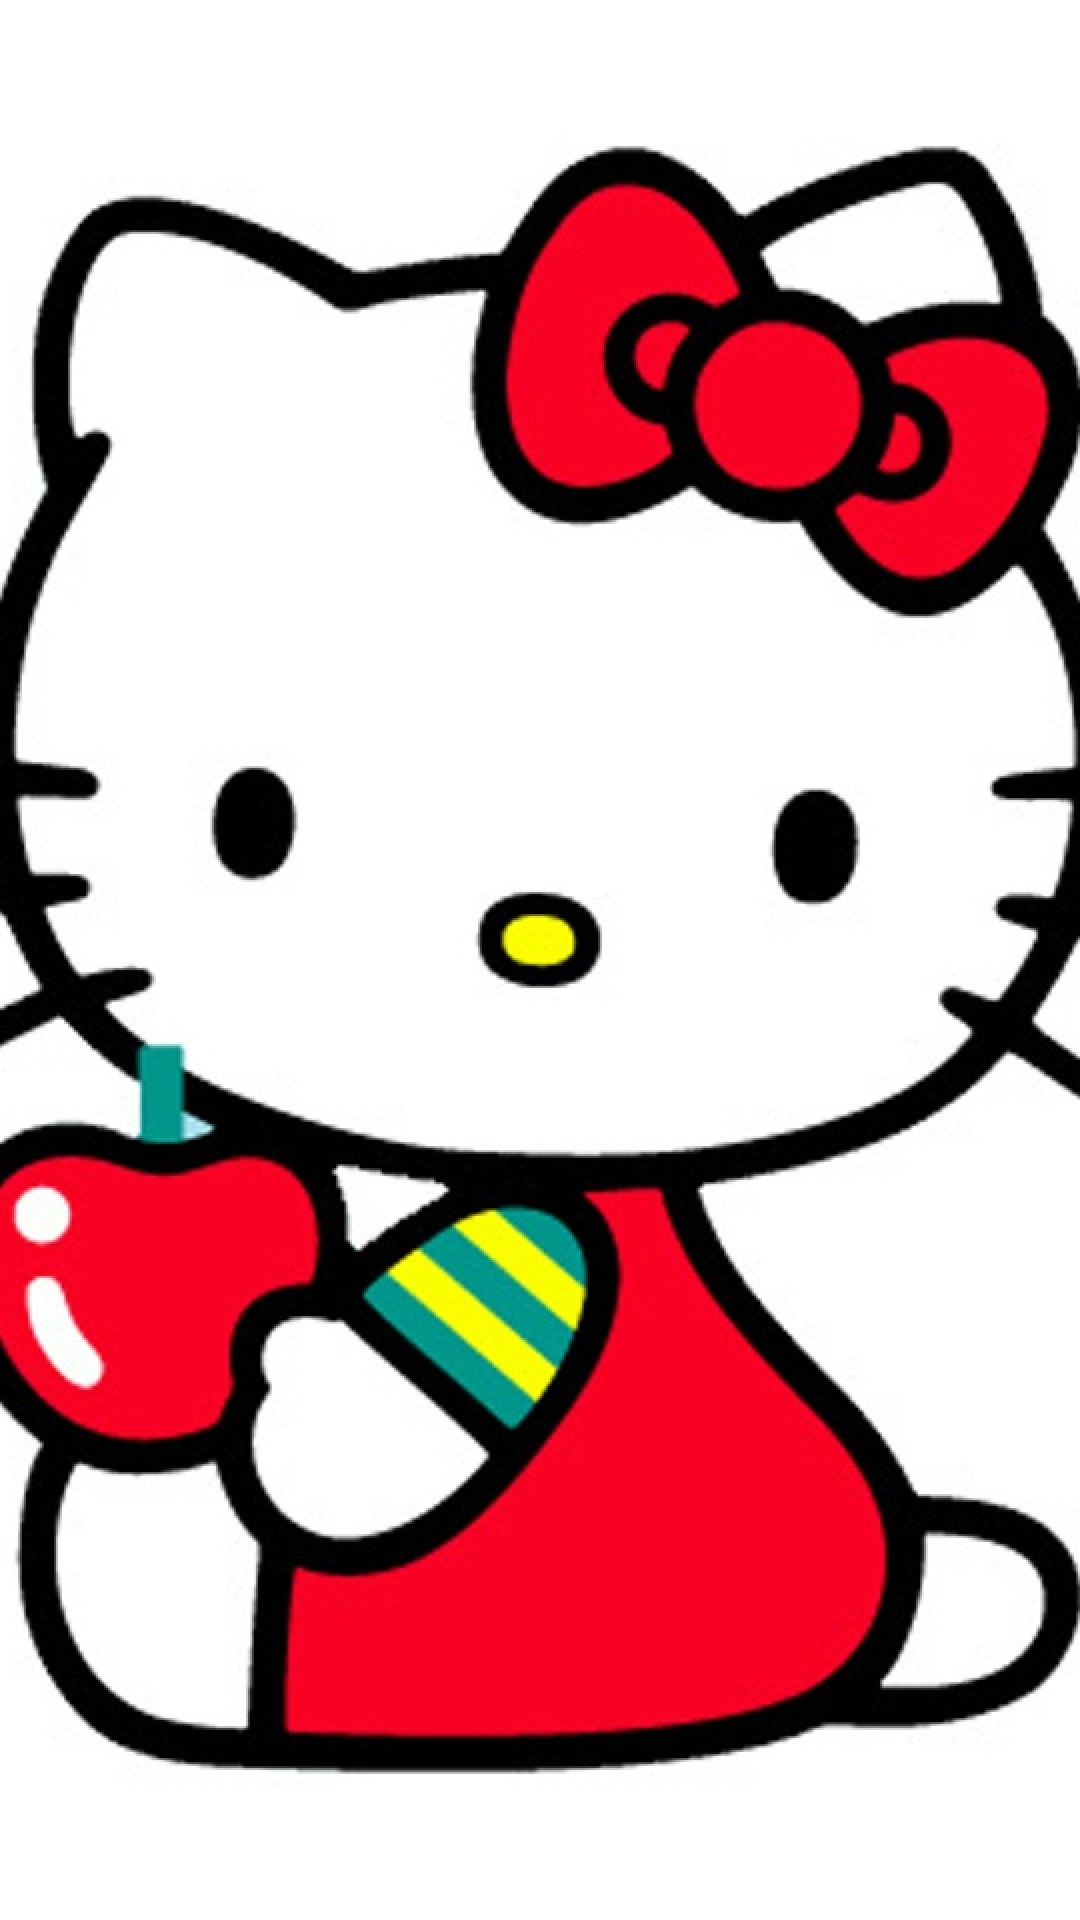 Film Hello Kitty 240336 Hd Wallpaper Backgrounds Download